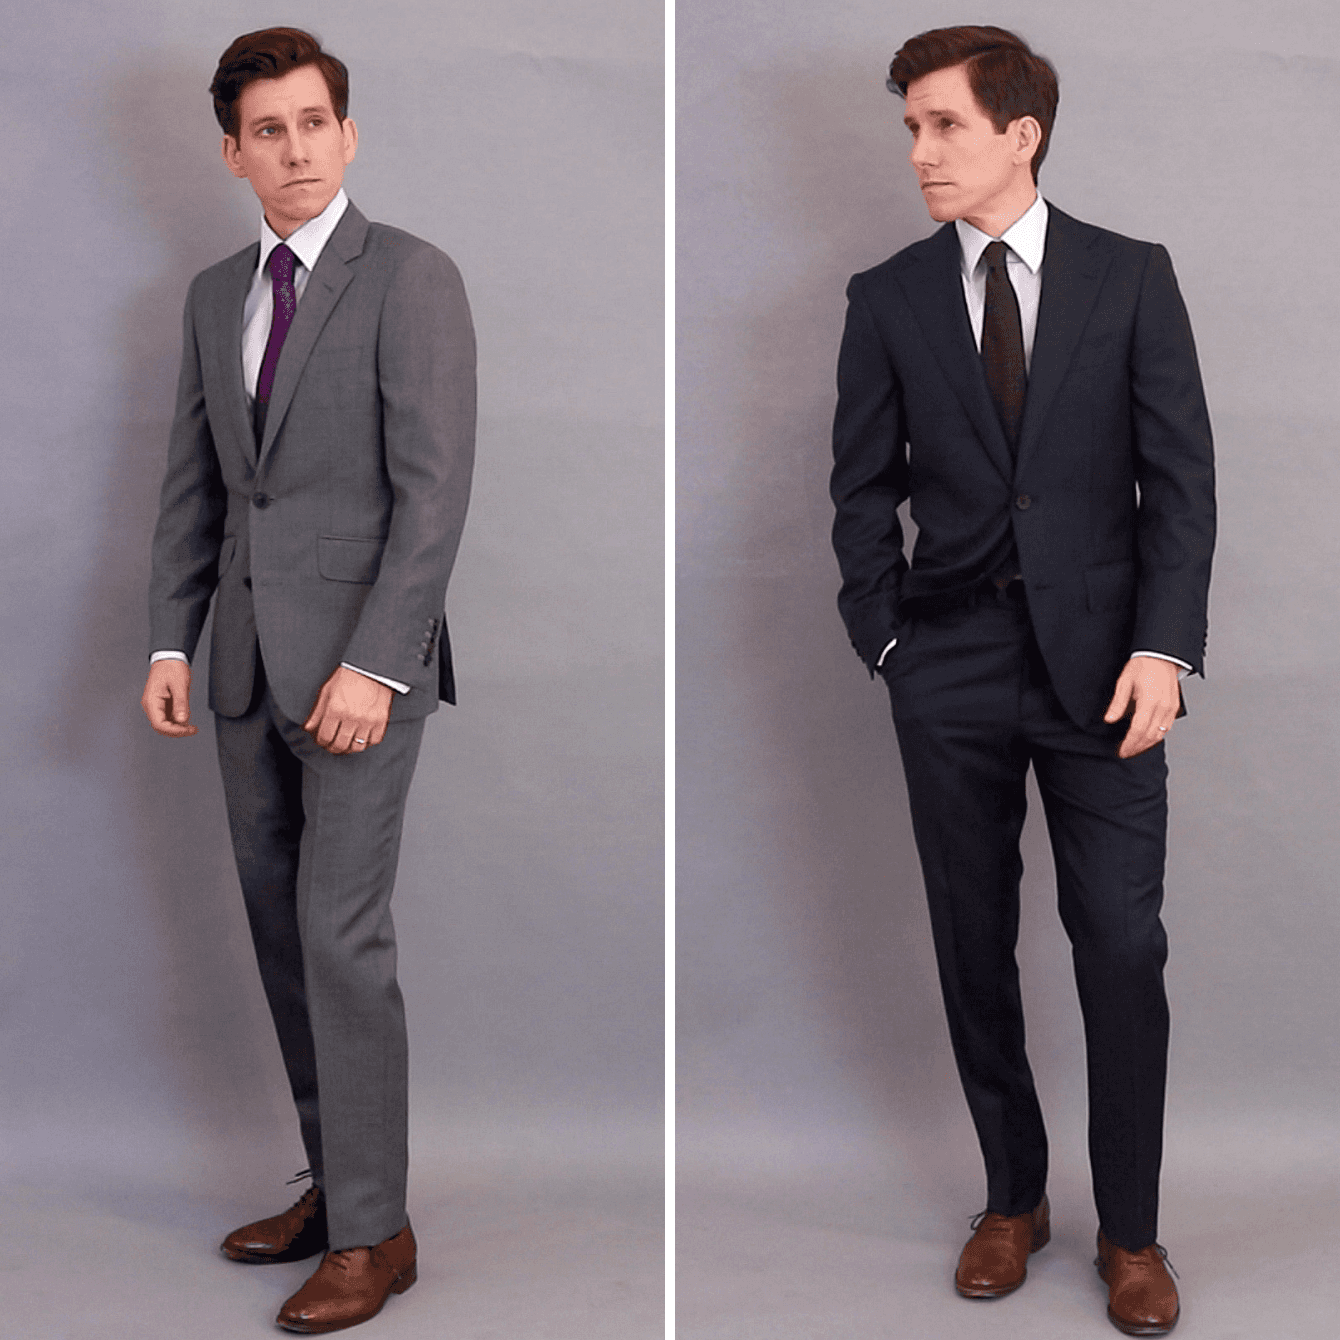 Bespoke vs  Made-to-Measure vs  Off the Rack: What's the